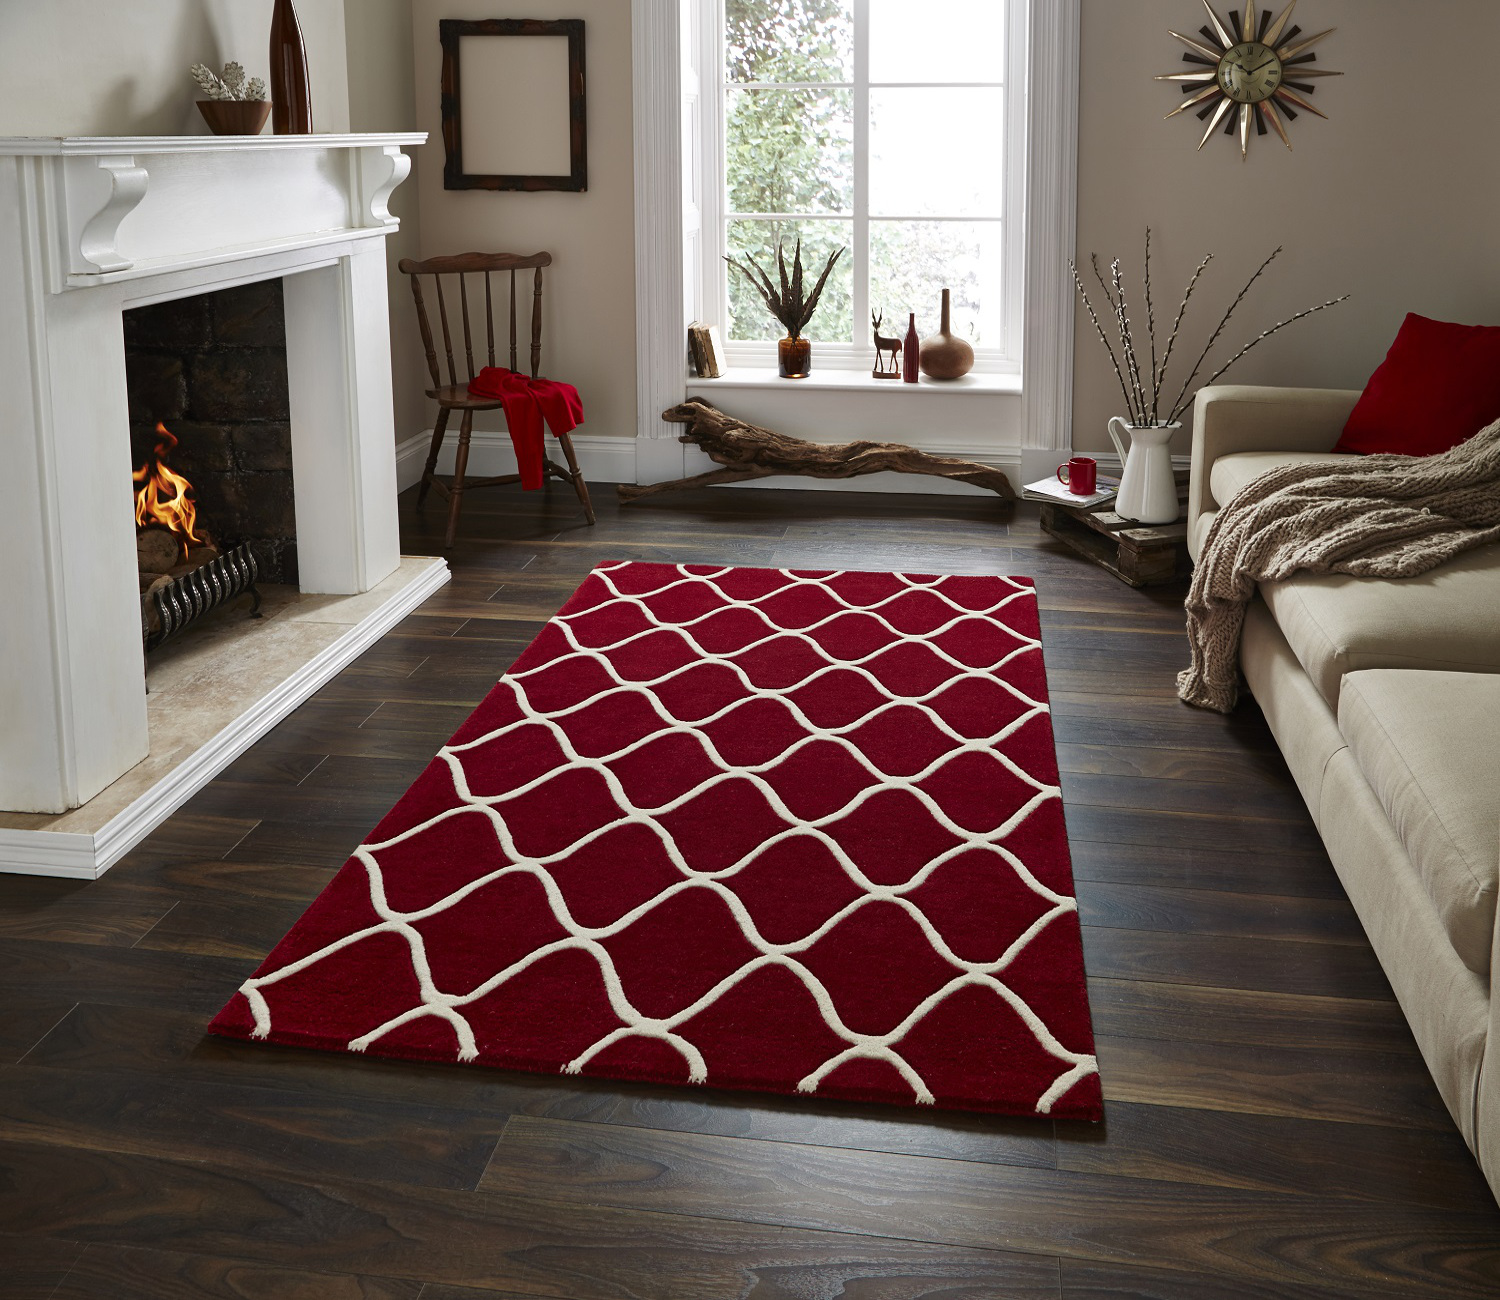 Wave design hand tufted 100 wool rug contemporary home for Modern decorative items for home